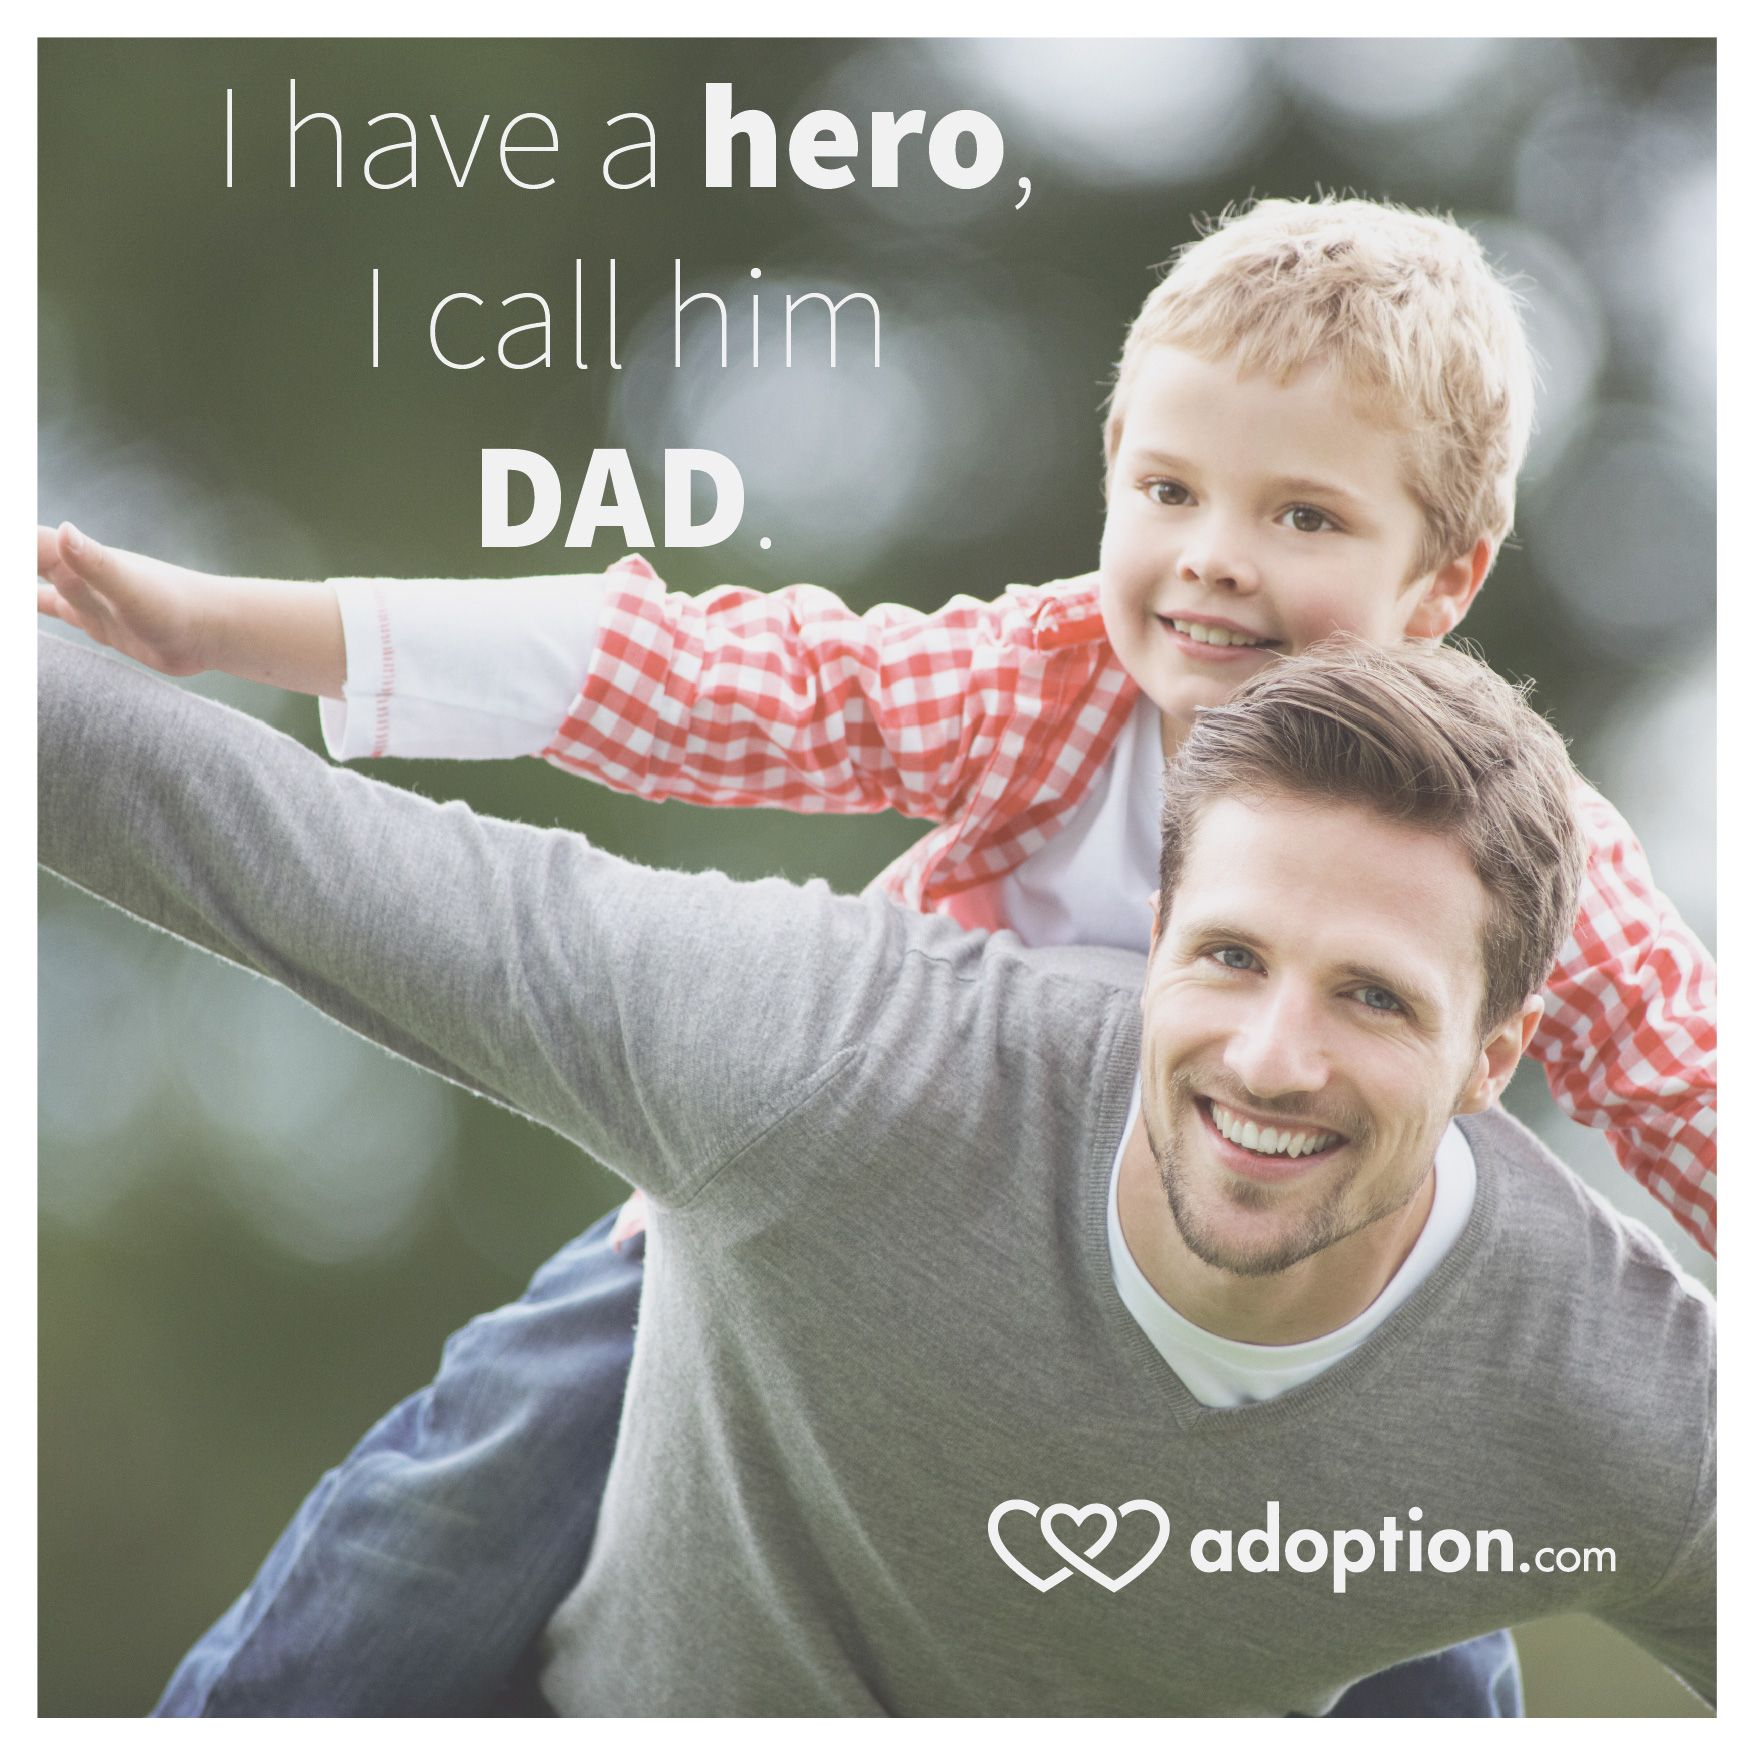 dads are awesome adoption dads mommy pinterest adoption